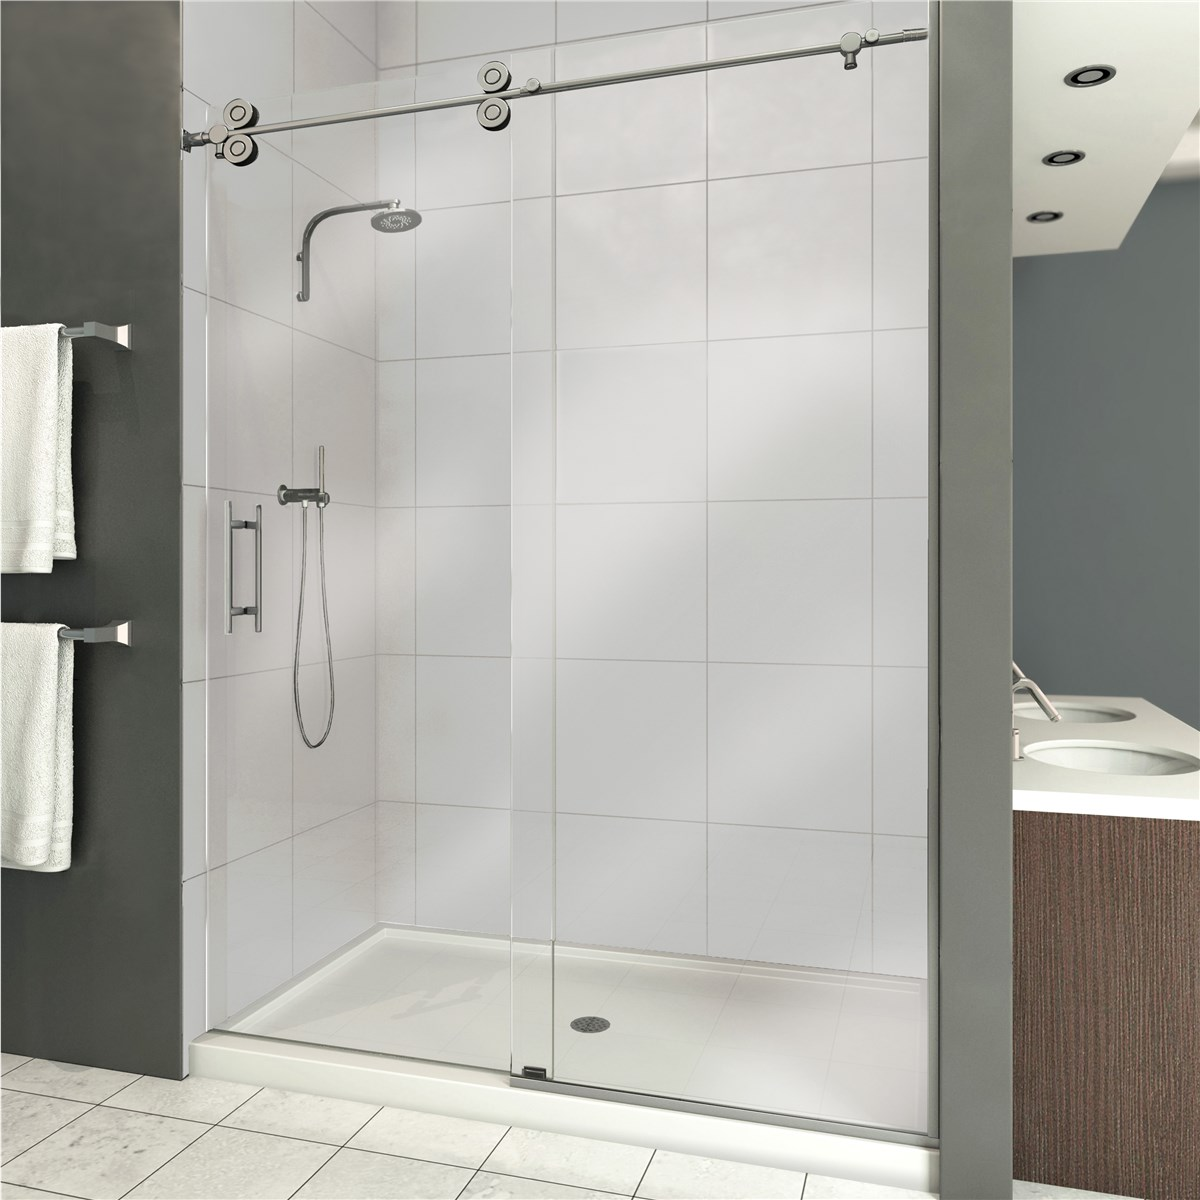 Shower Doors | Shower Door Company | Shower Rods | Bath Planet